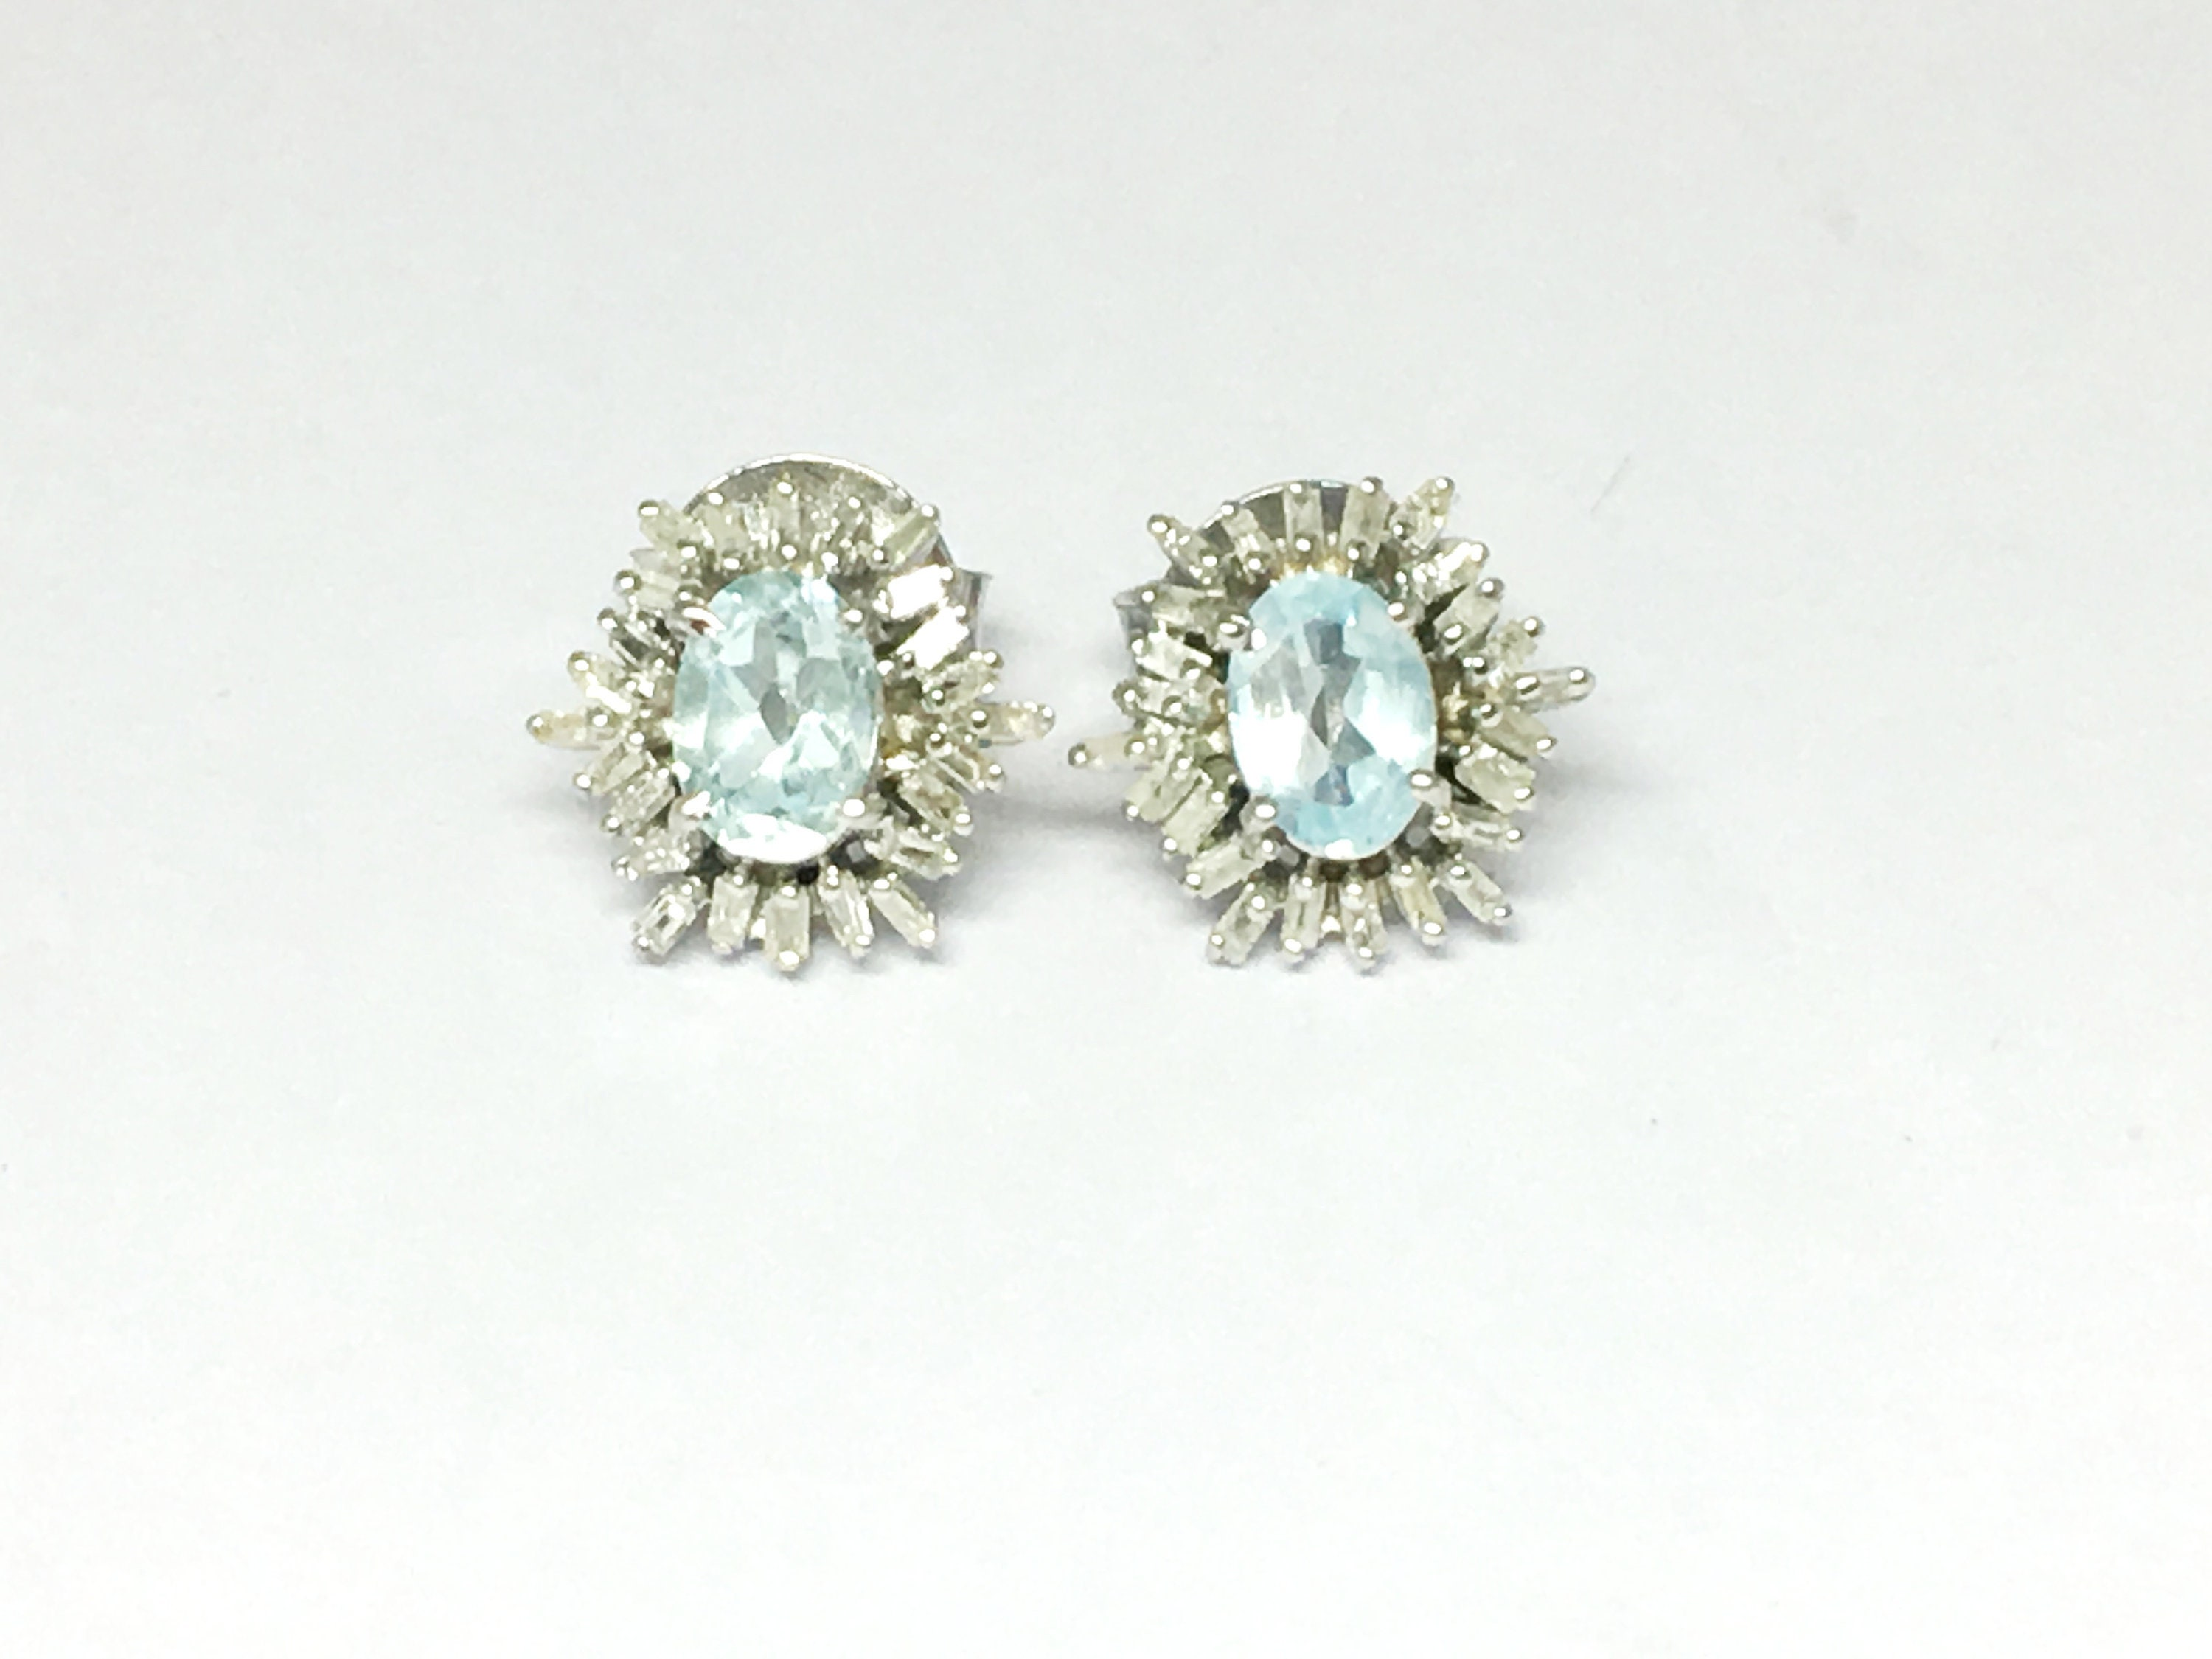 Sterling Silver 925 Blue Topaz Stud Earring with Diamond